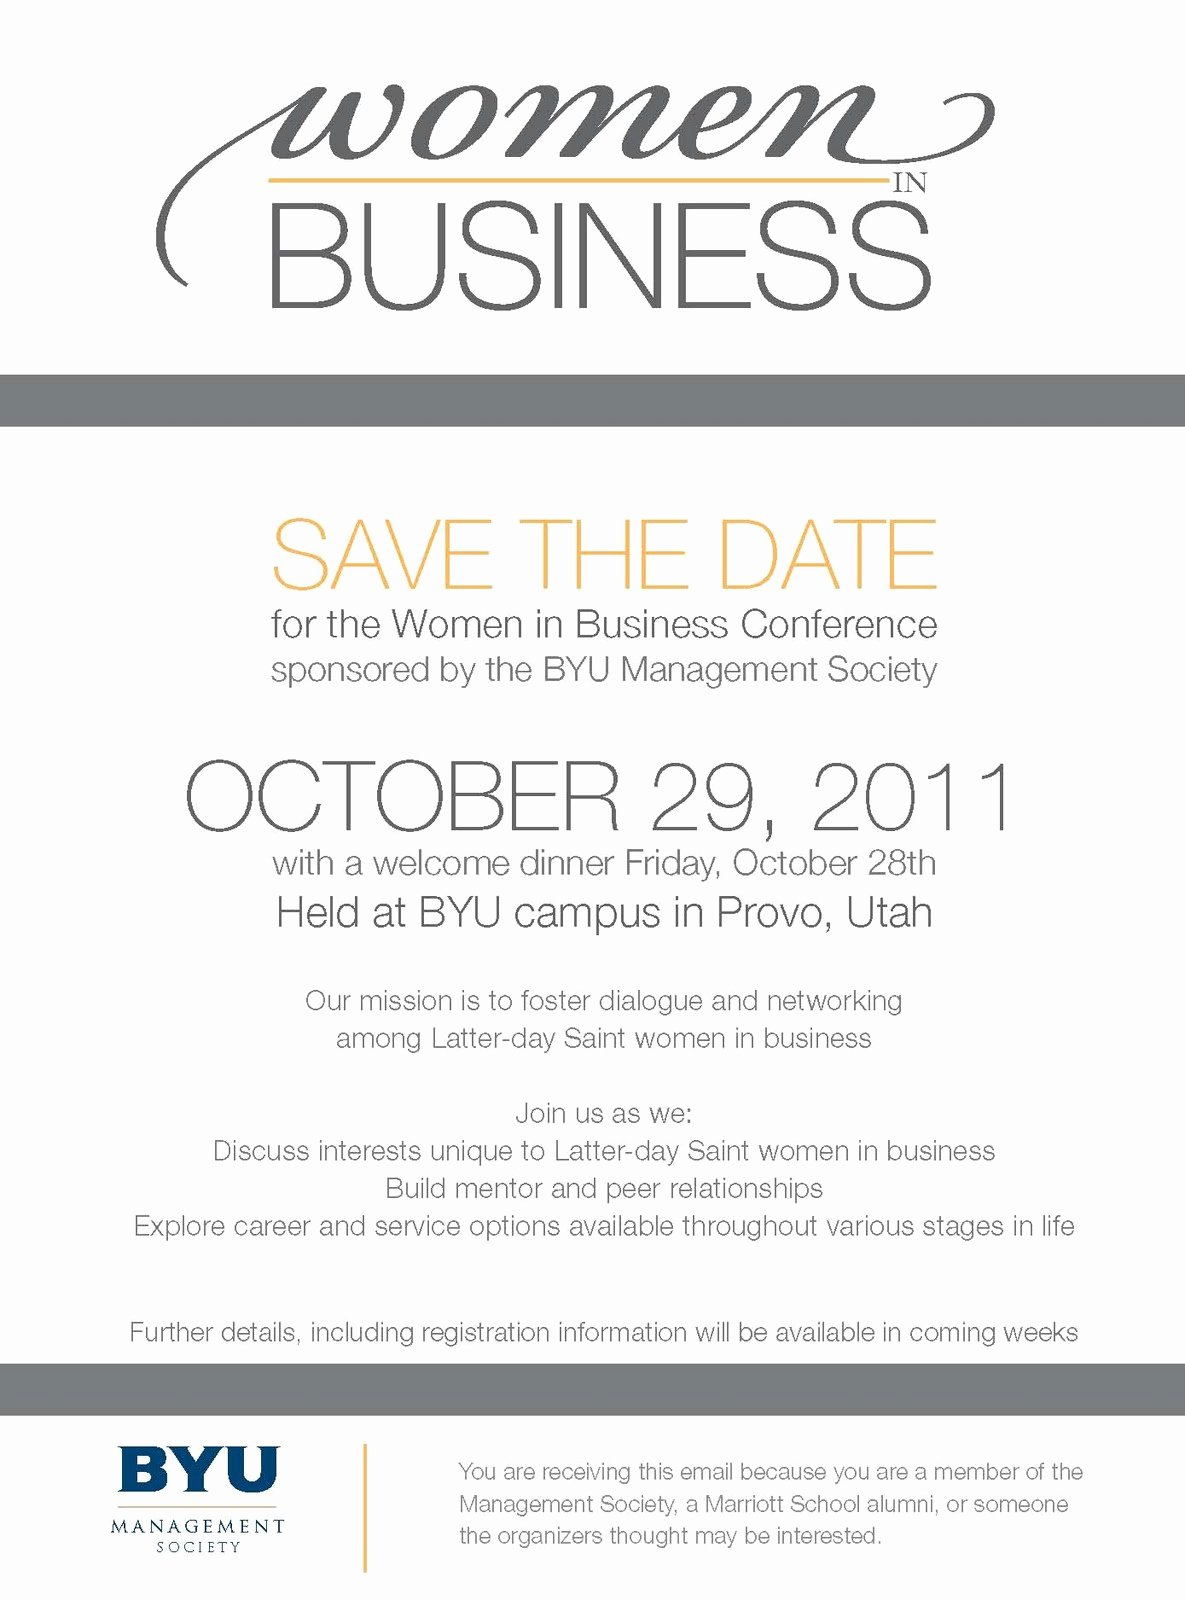 Save the Date Corporate event Beautiful the Snyder S July 2011